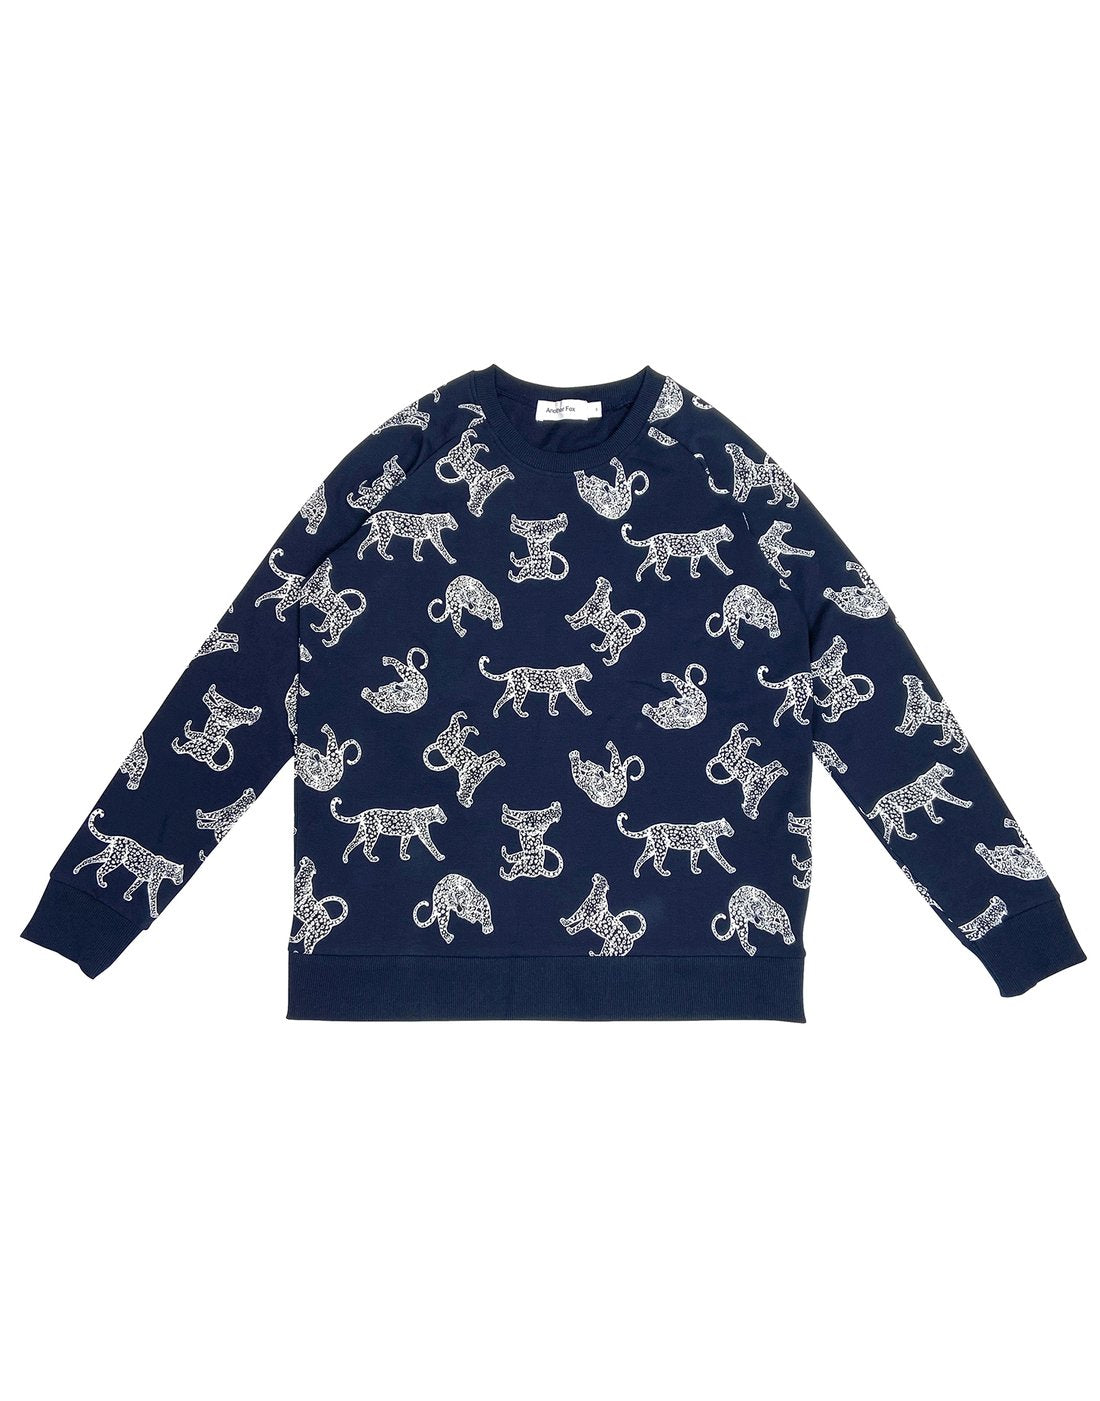 Adult - Navy Leopard Sweatshirt